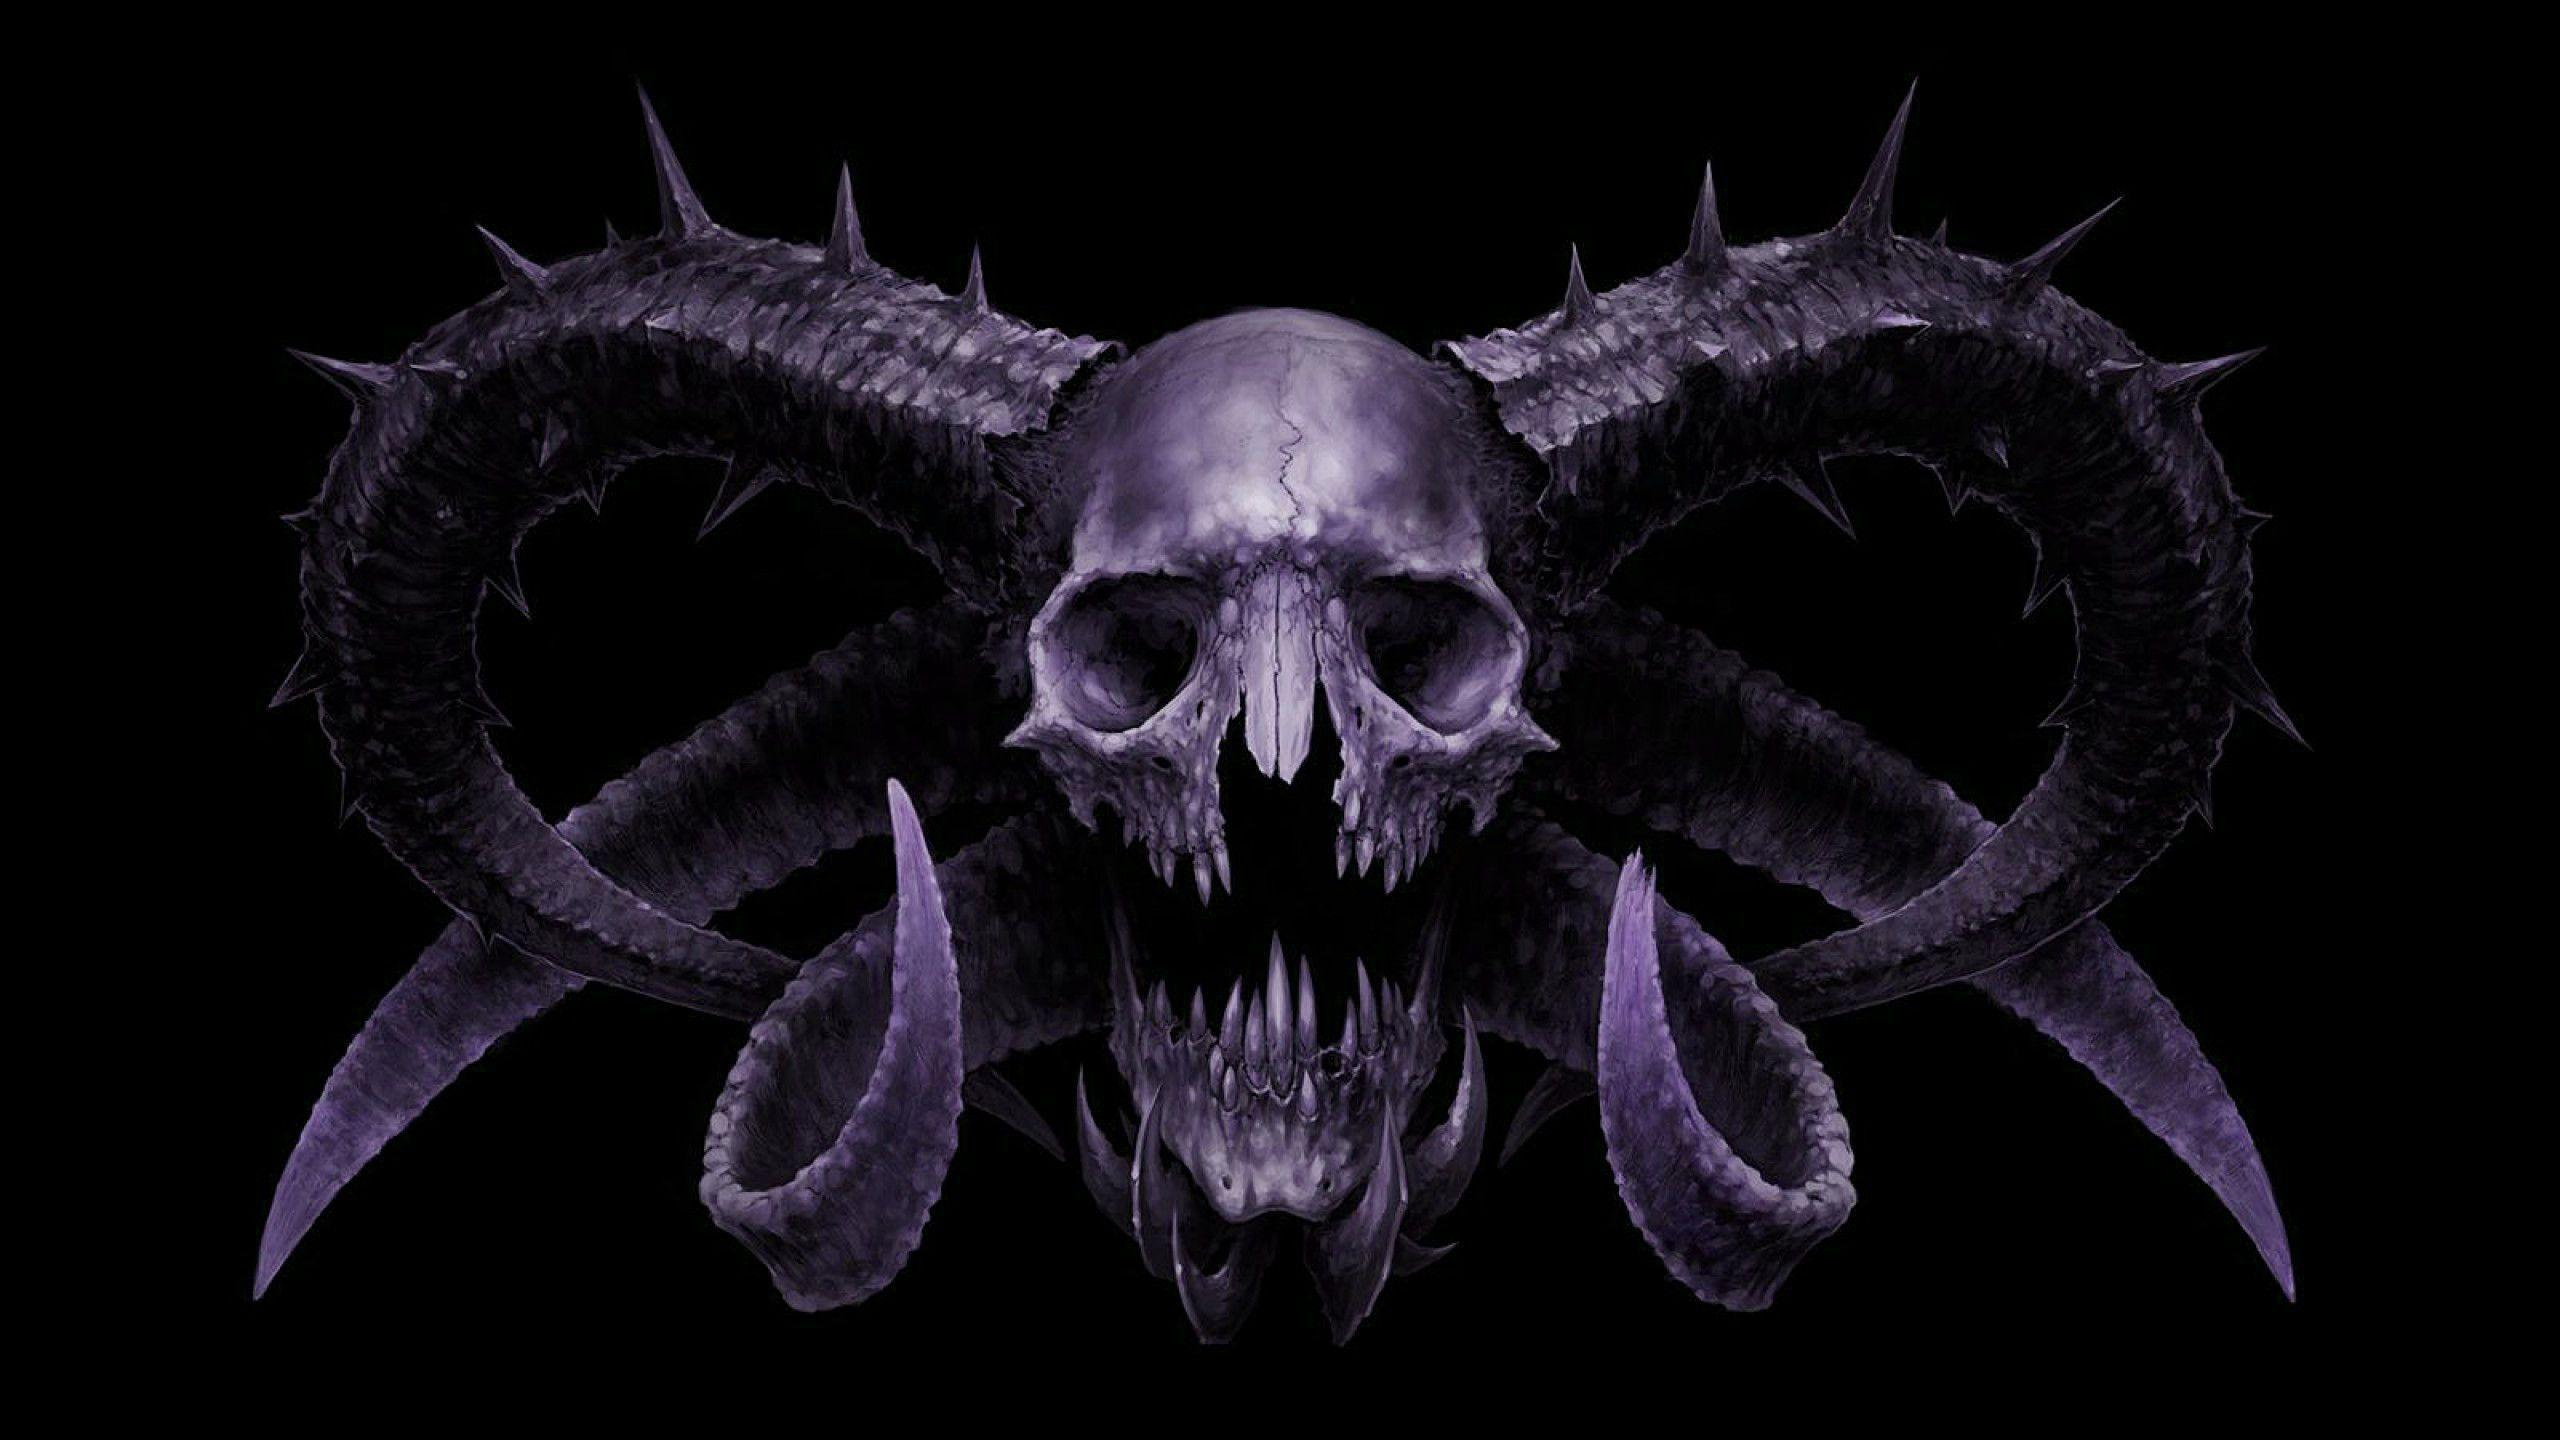 evil skull wallpapers screensaver - photo #18